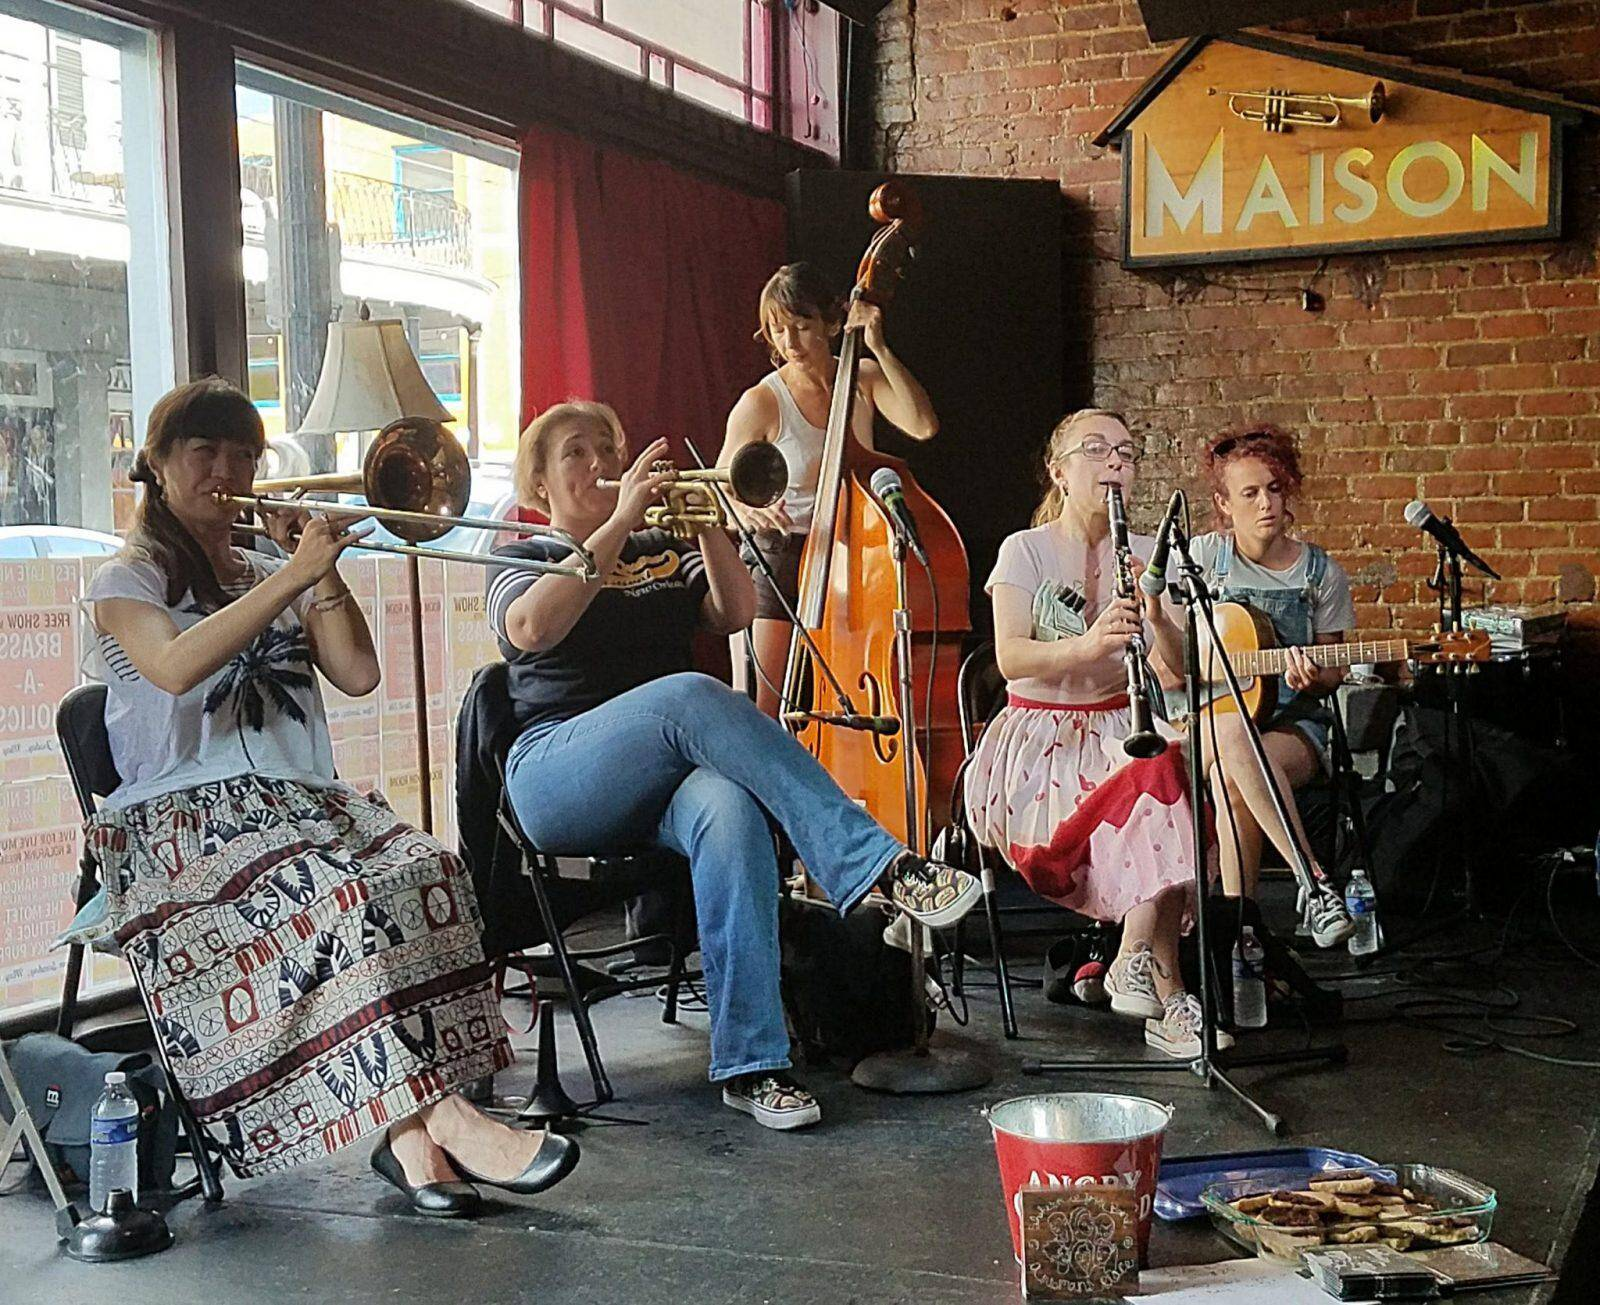 The Shake 'Em Up Jazz Band performs at the Maison on Frenchmen St., with Marla Dixon (tp) Chloe Feoranzo (cl) Haruka Kikuchi (tb) Molly Reeves (g) Julie Schexnayder (bs). (photo by Ken Arnold)